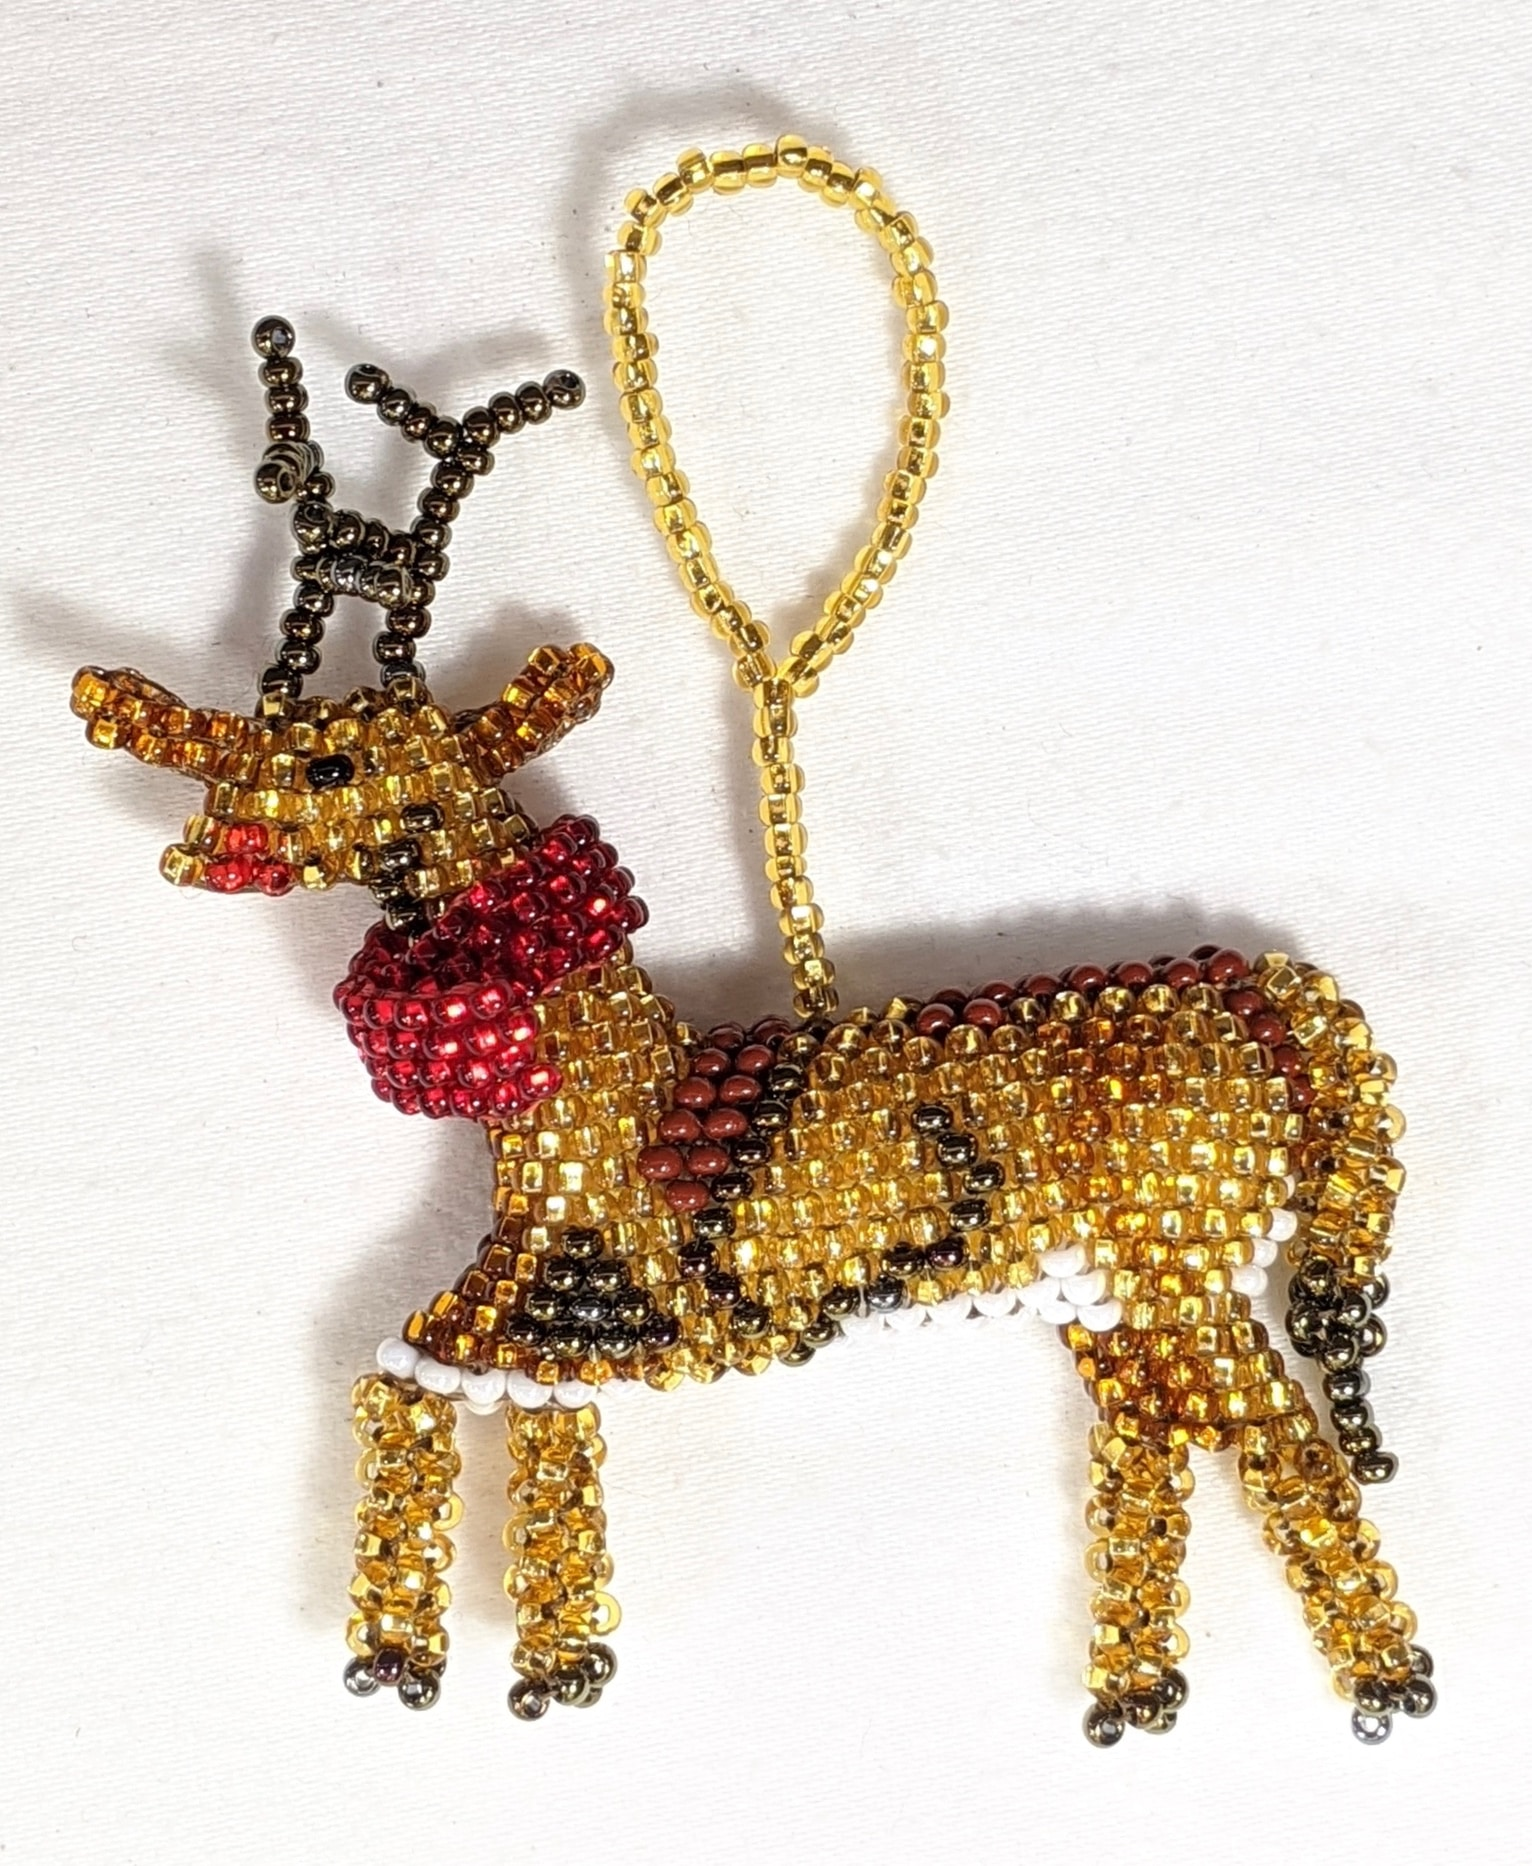 Reindeer Beaded Ornament